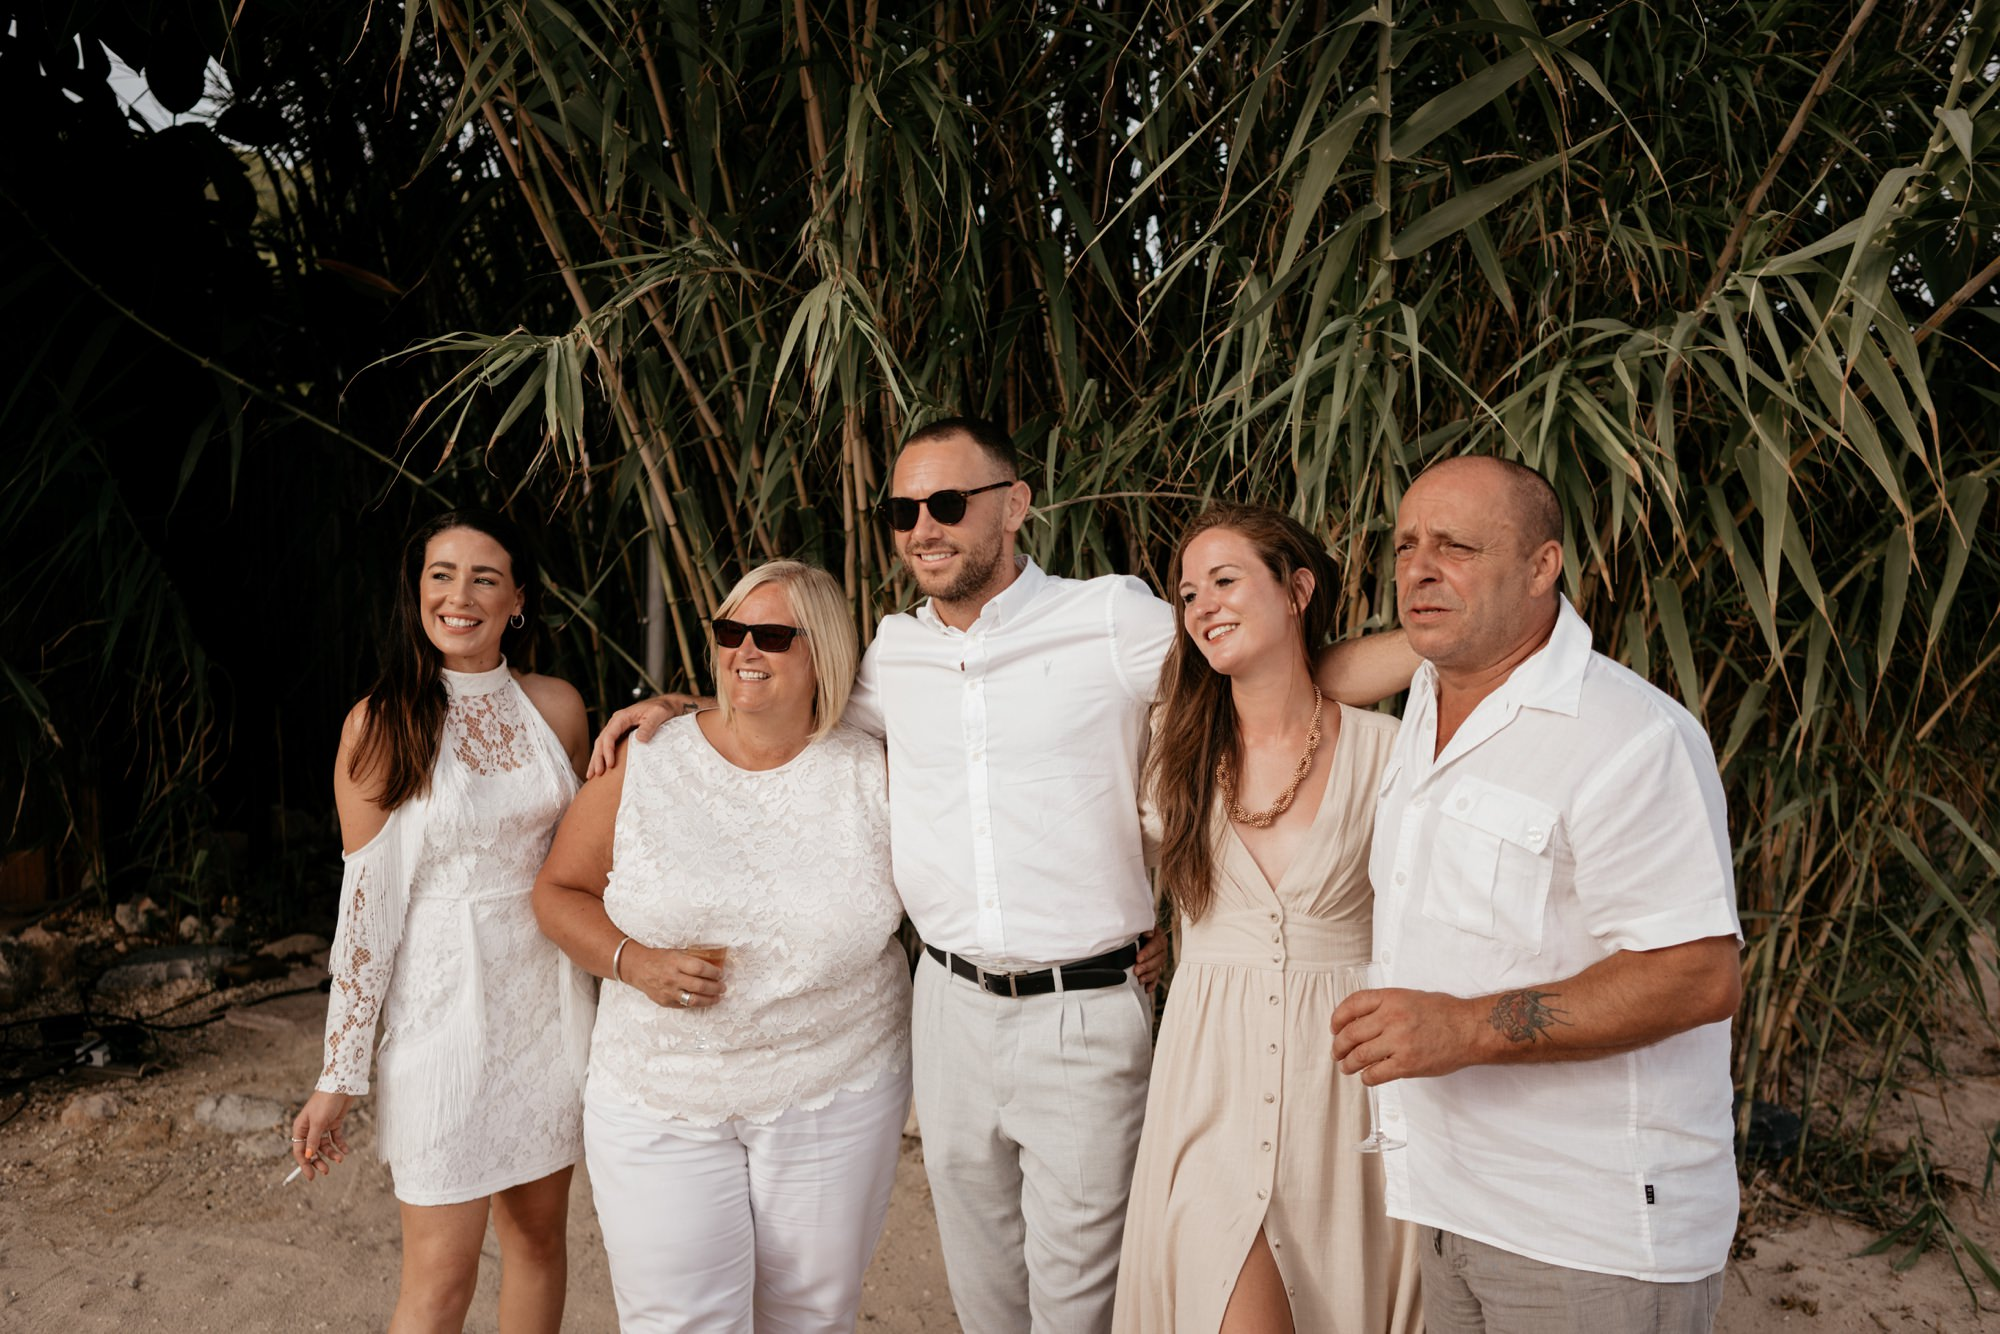 natural wedding photo destination la escollera ibiza 0038 1